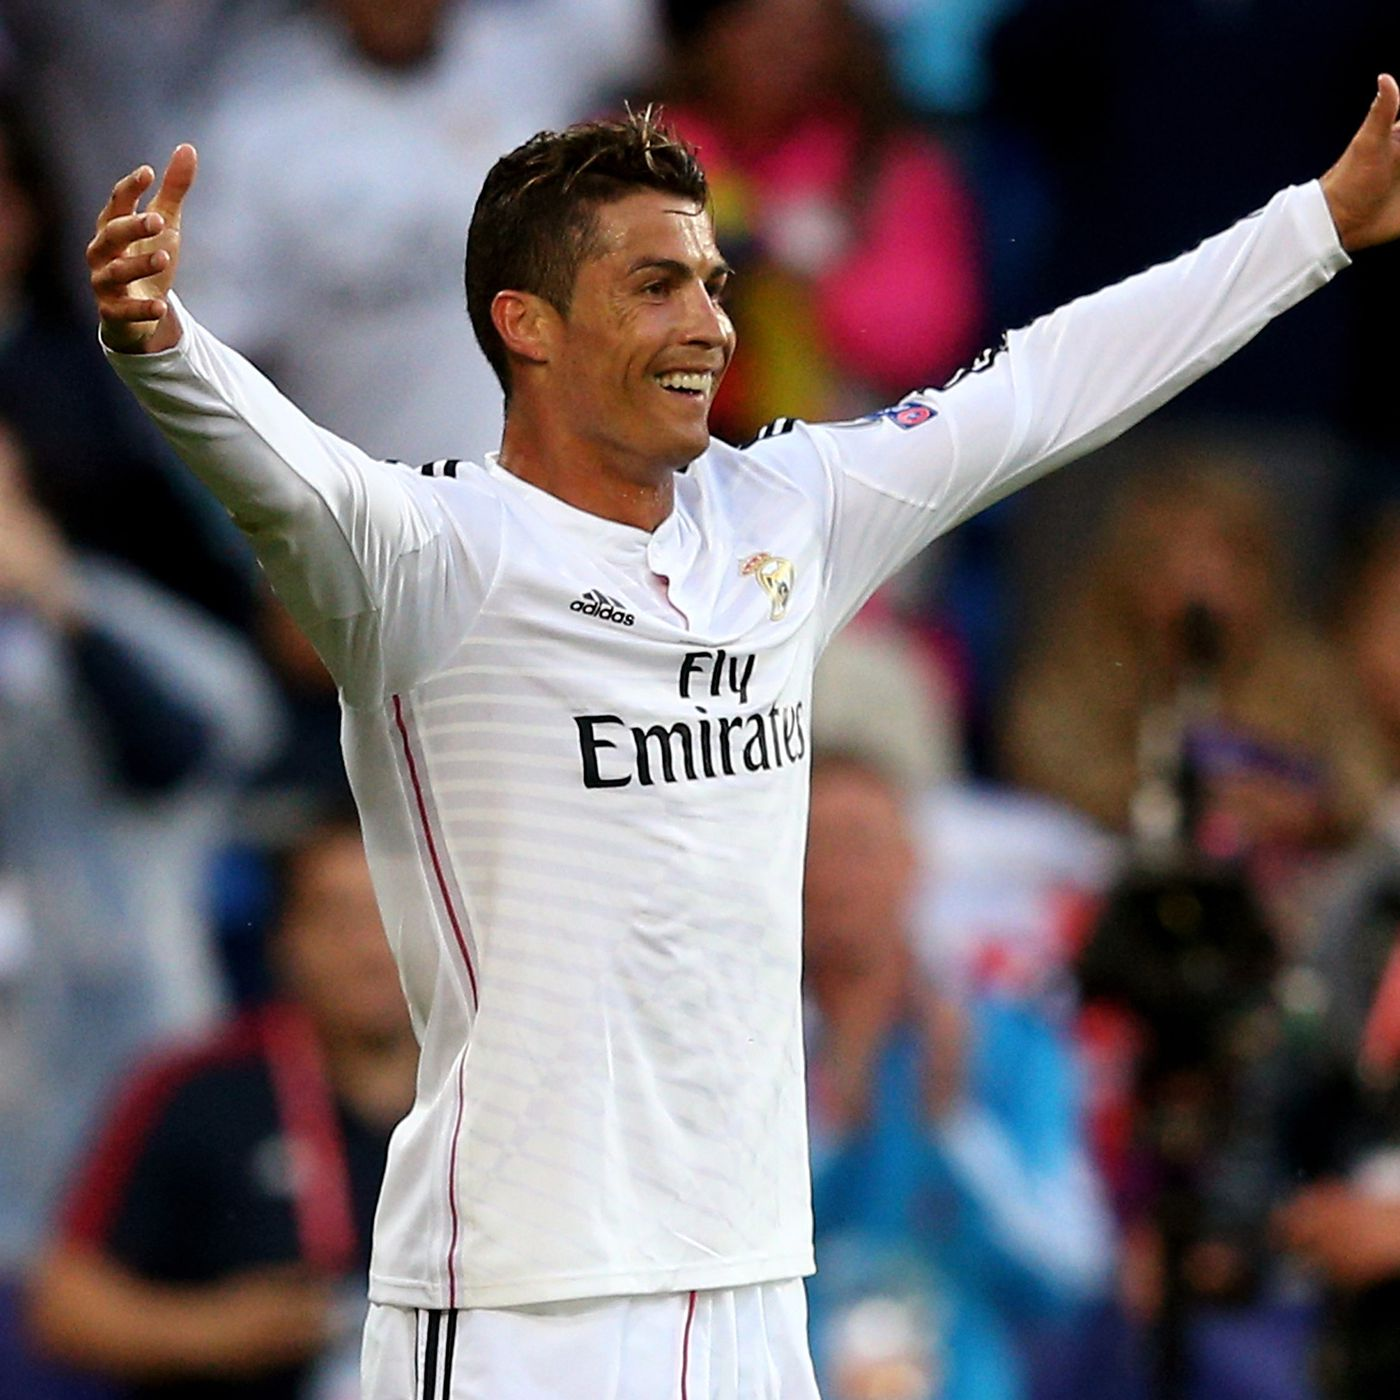 Real Madrid Vs Sevilla 2014 Uefa Super Cup Merengues Lift The Trophy With 2 0 Win Sbnation Com